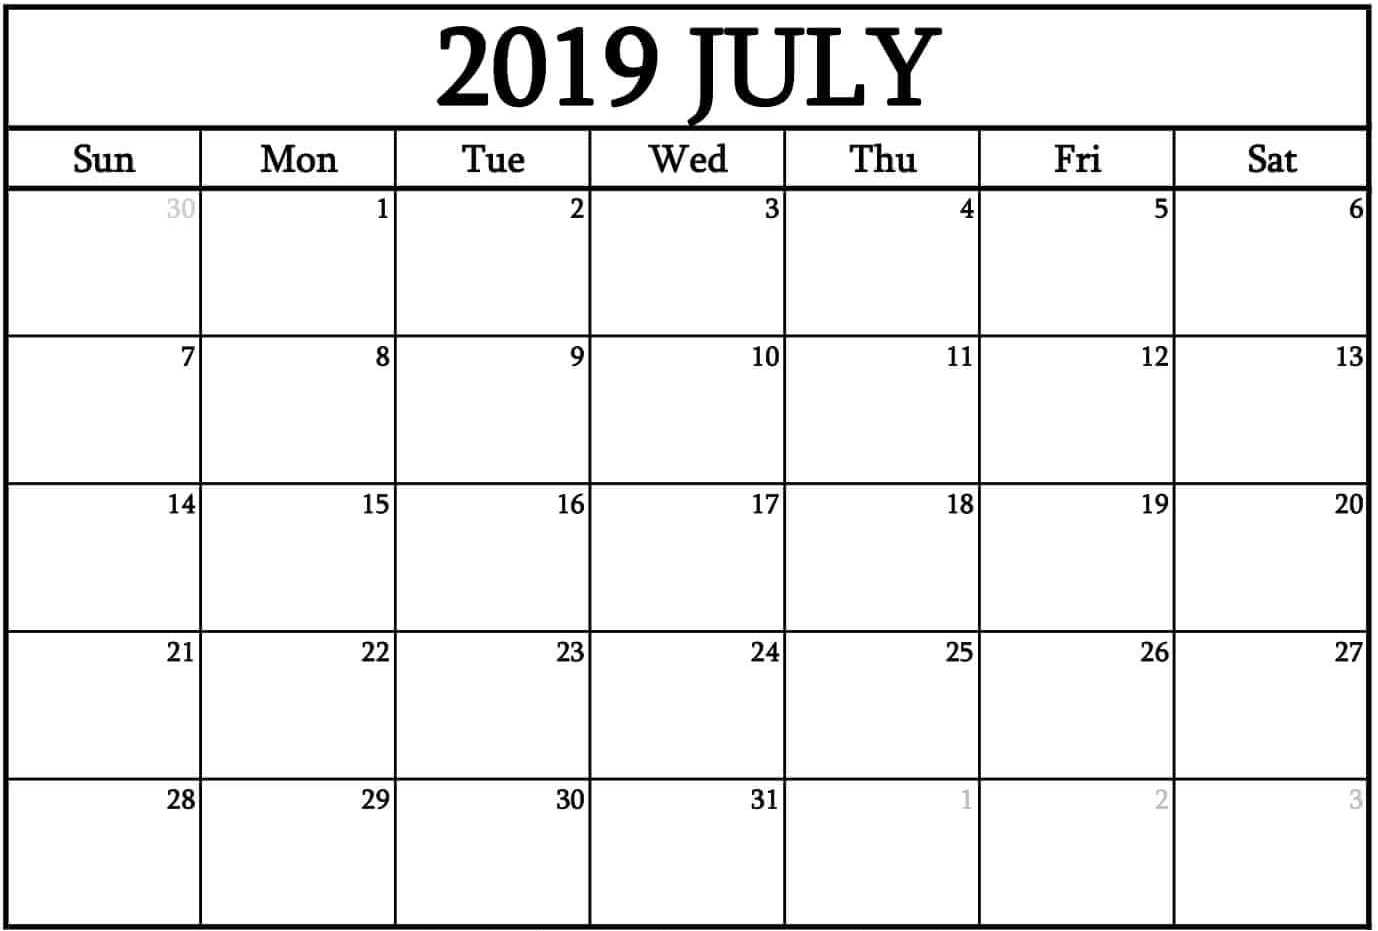 July 2019 Calendar with Holidays Template